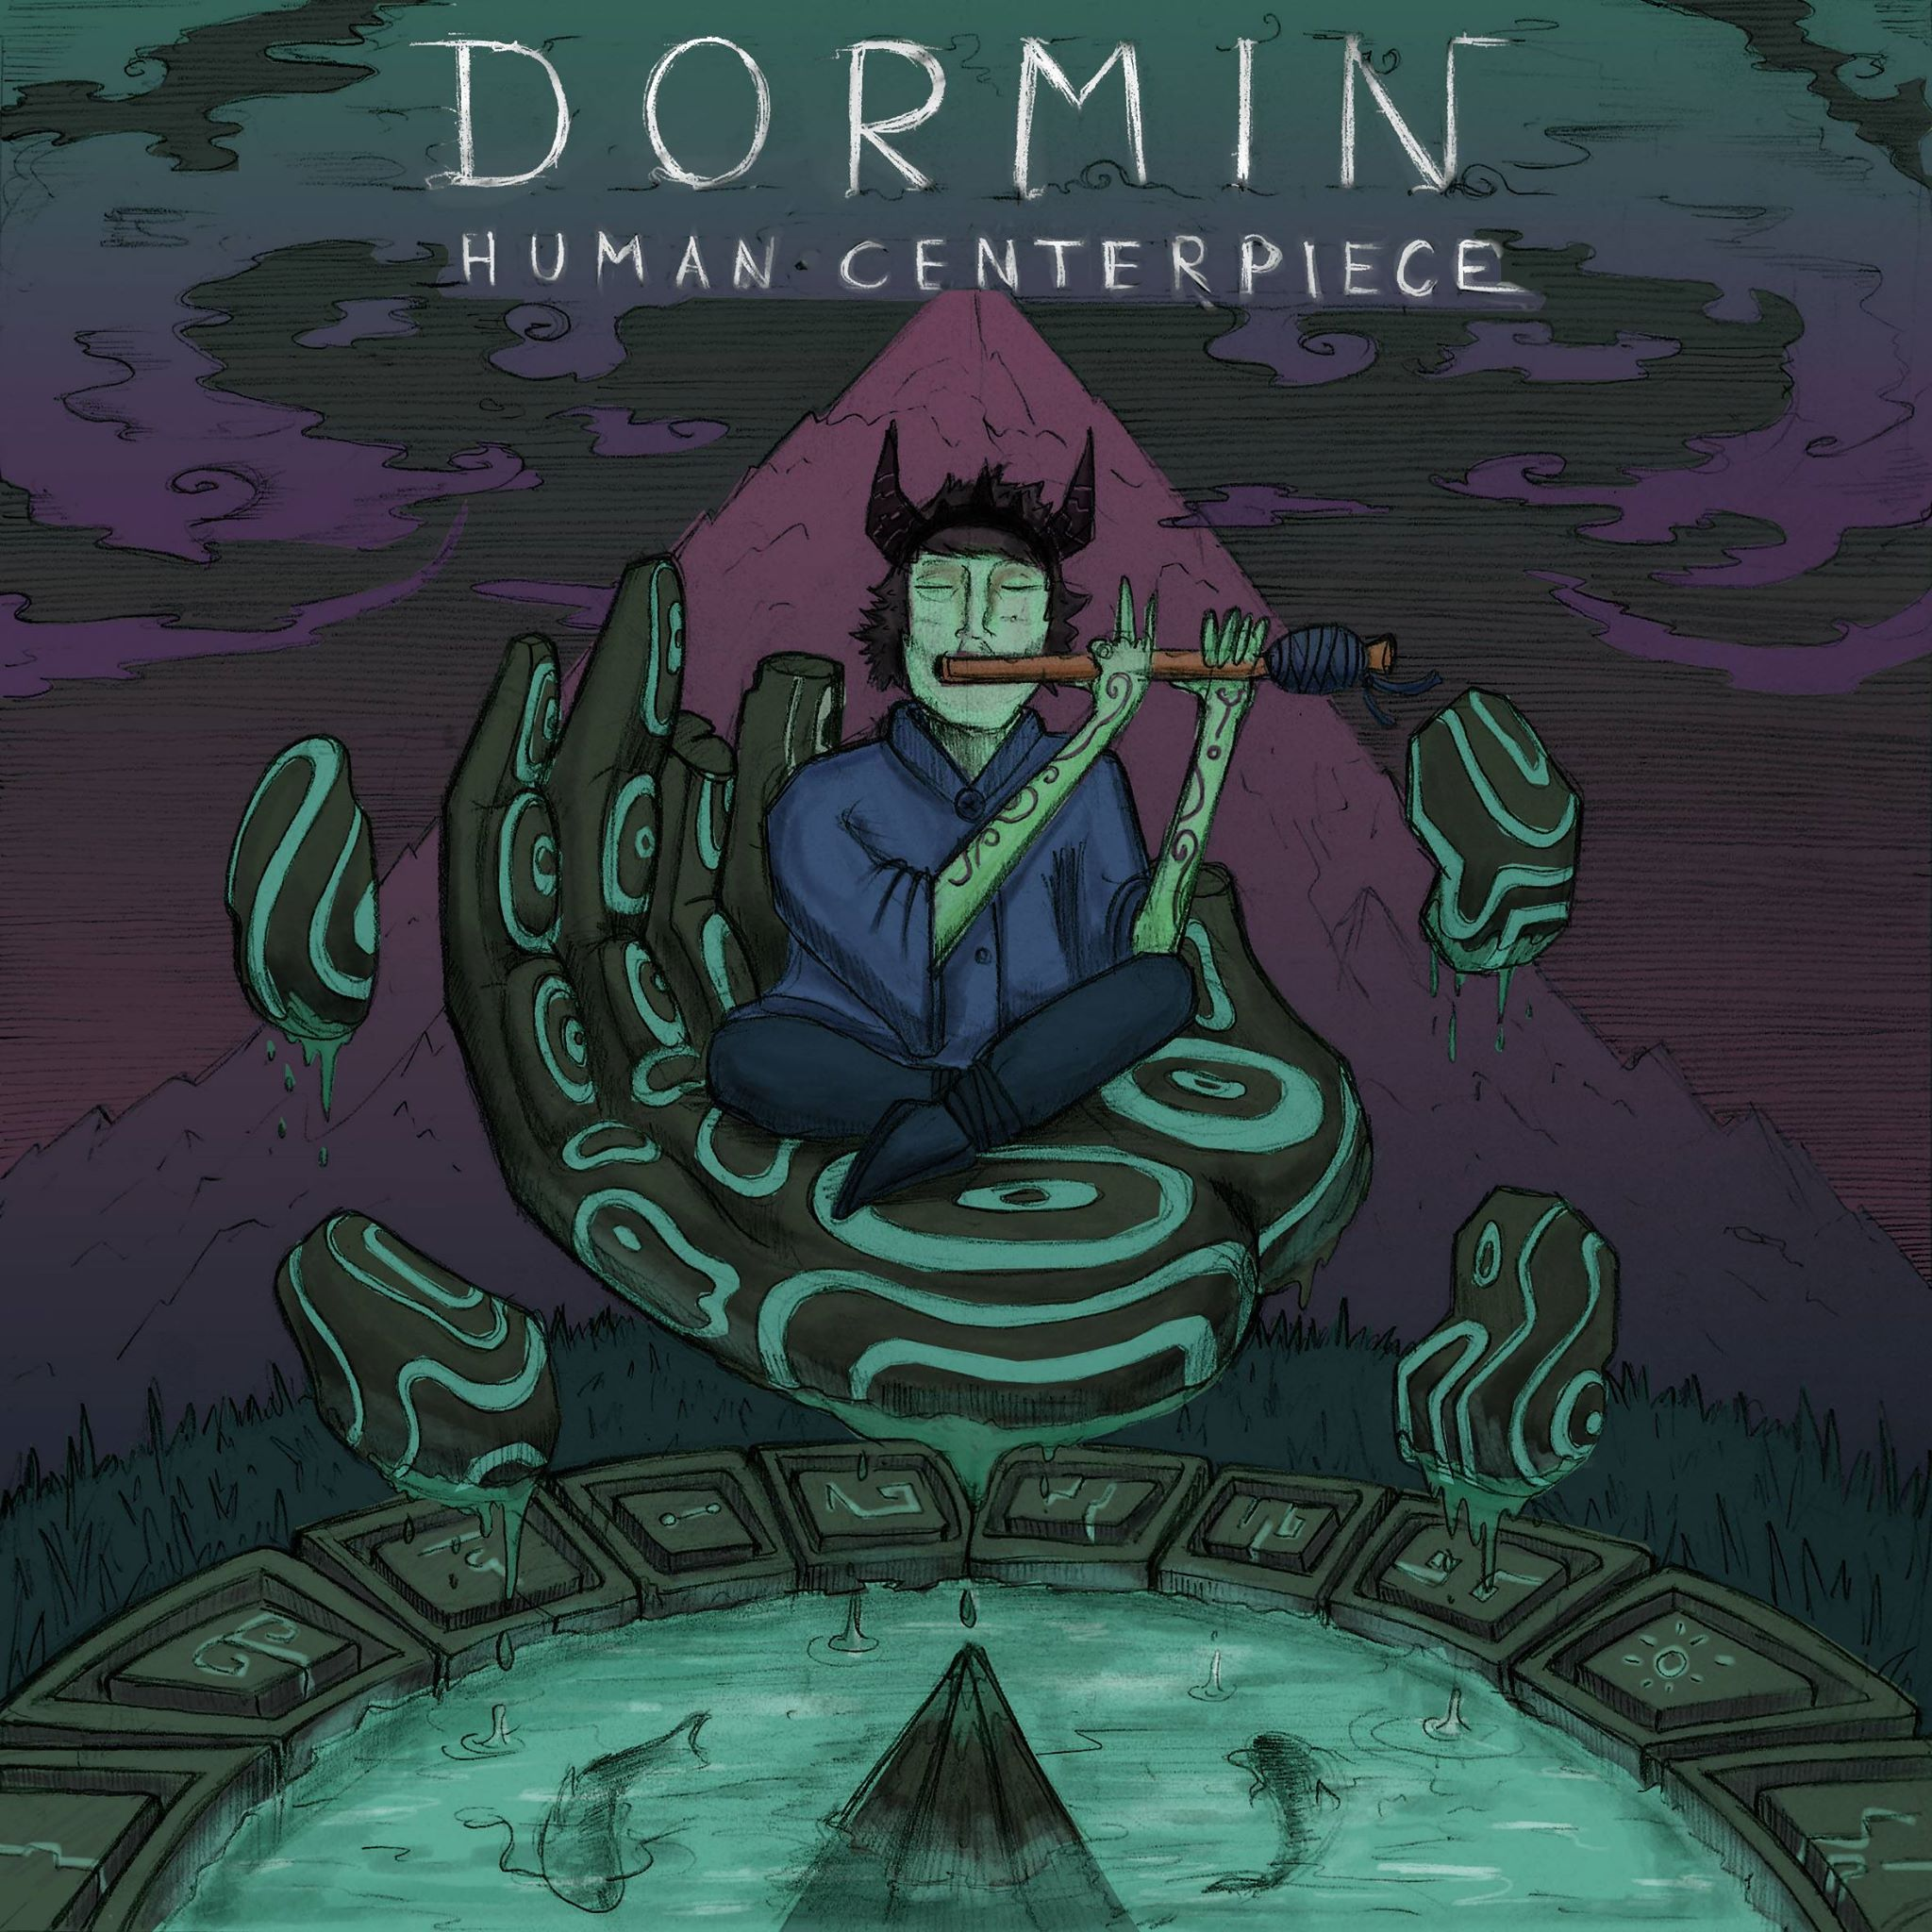 Dormin Digital Artwork.jpg